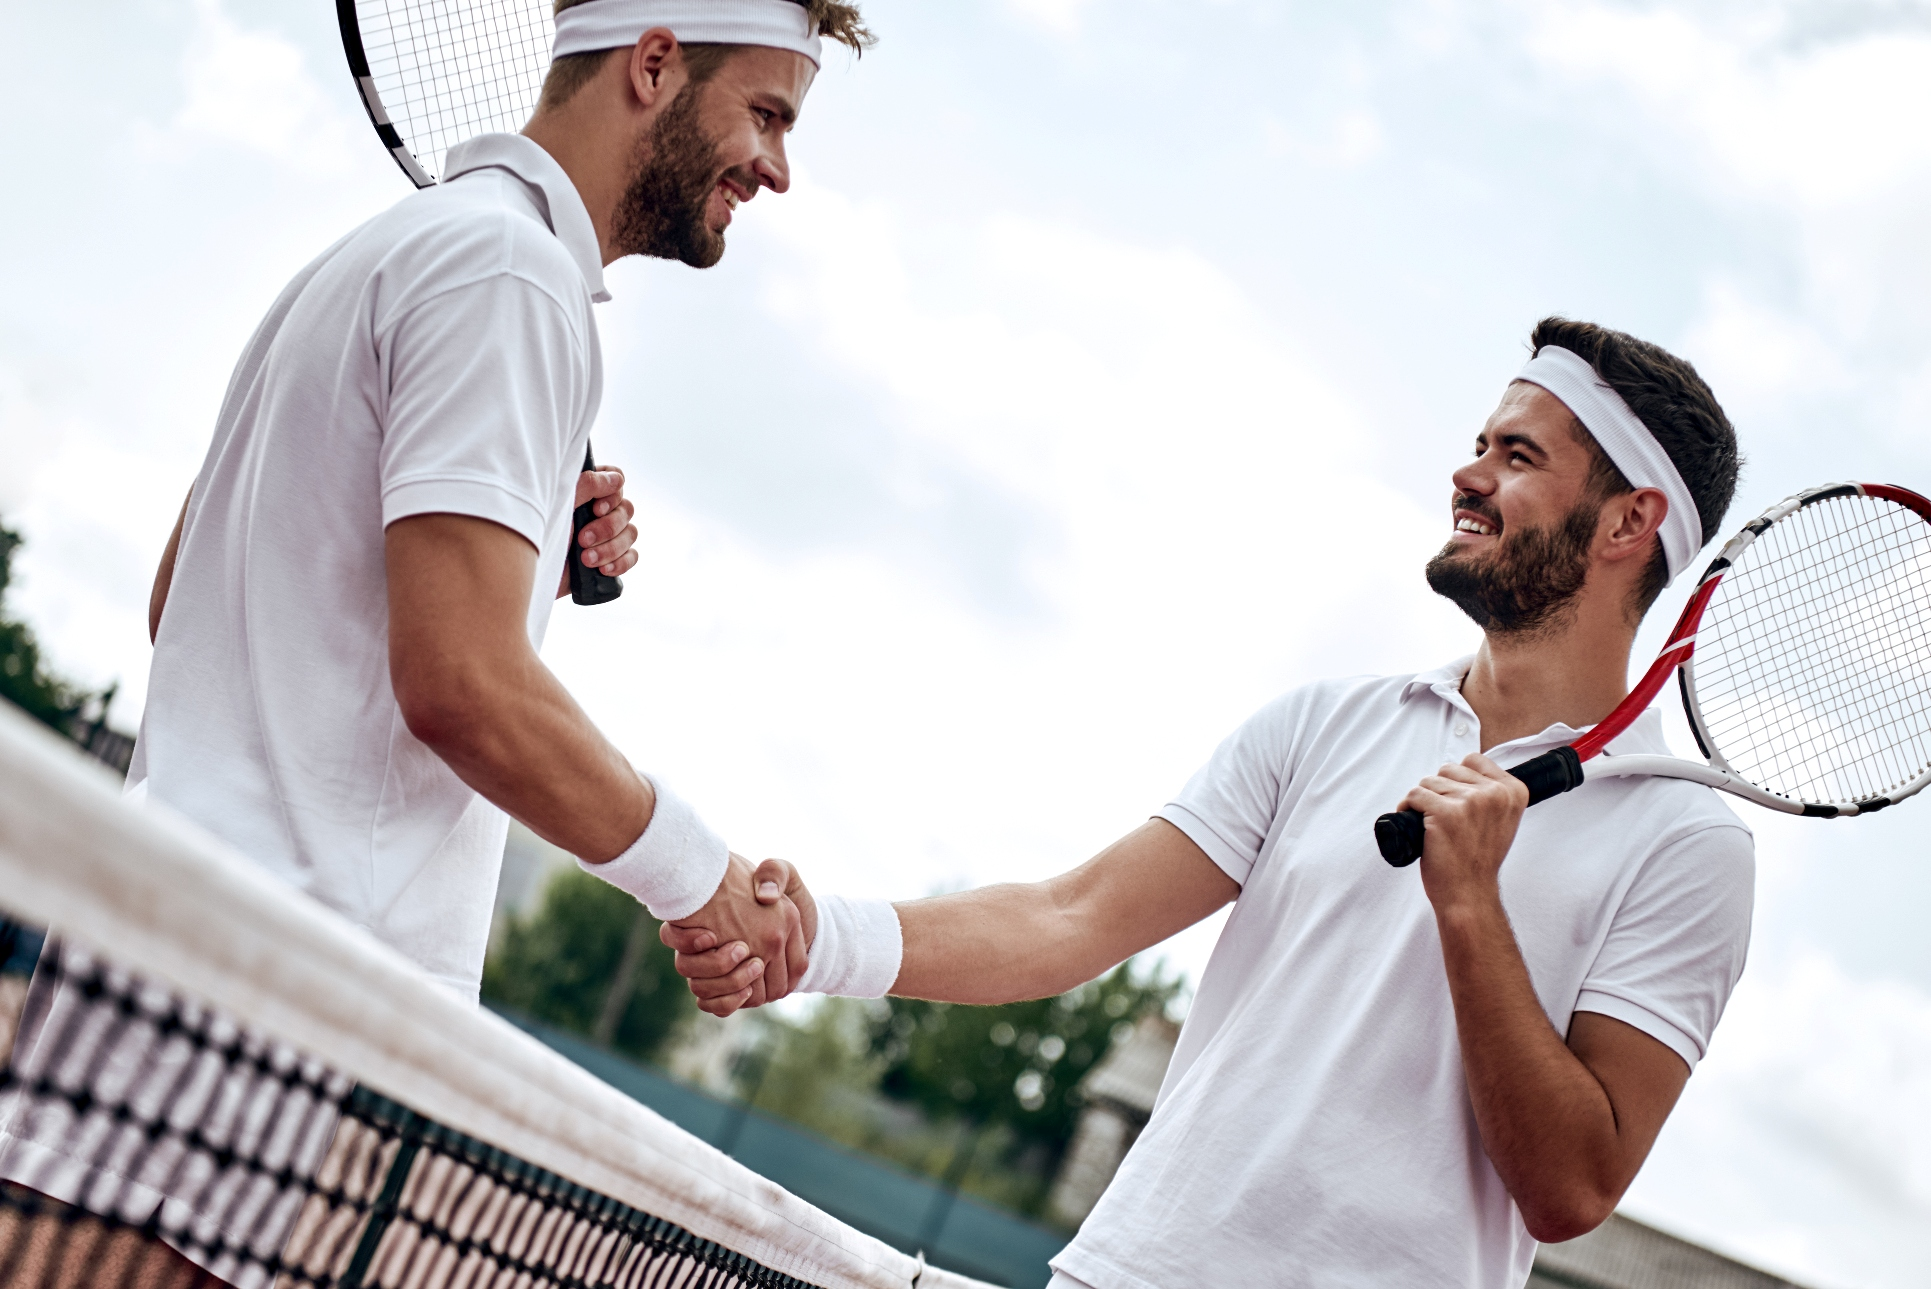 Benefits of Corporate Tennis Events